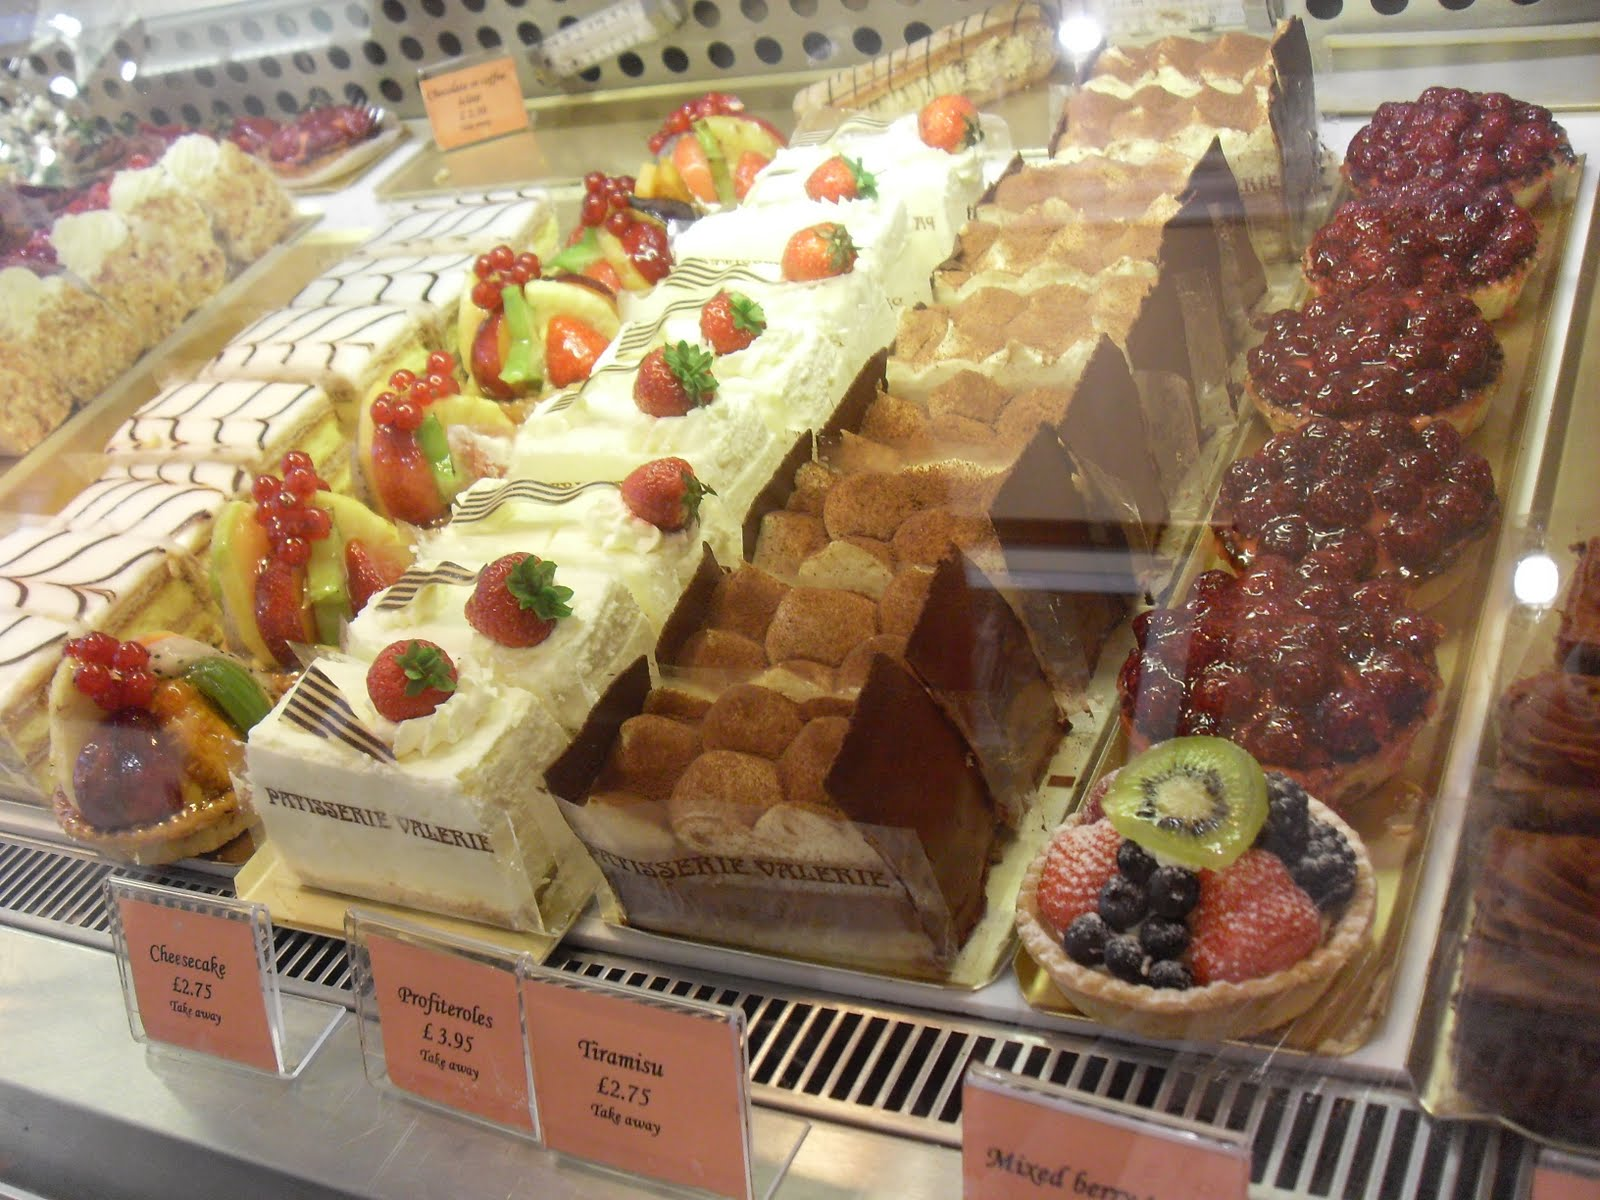 Wonderful Patisserie Cakes